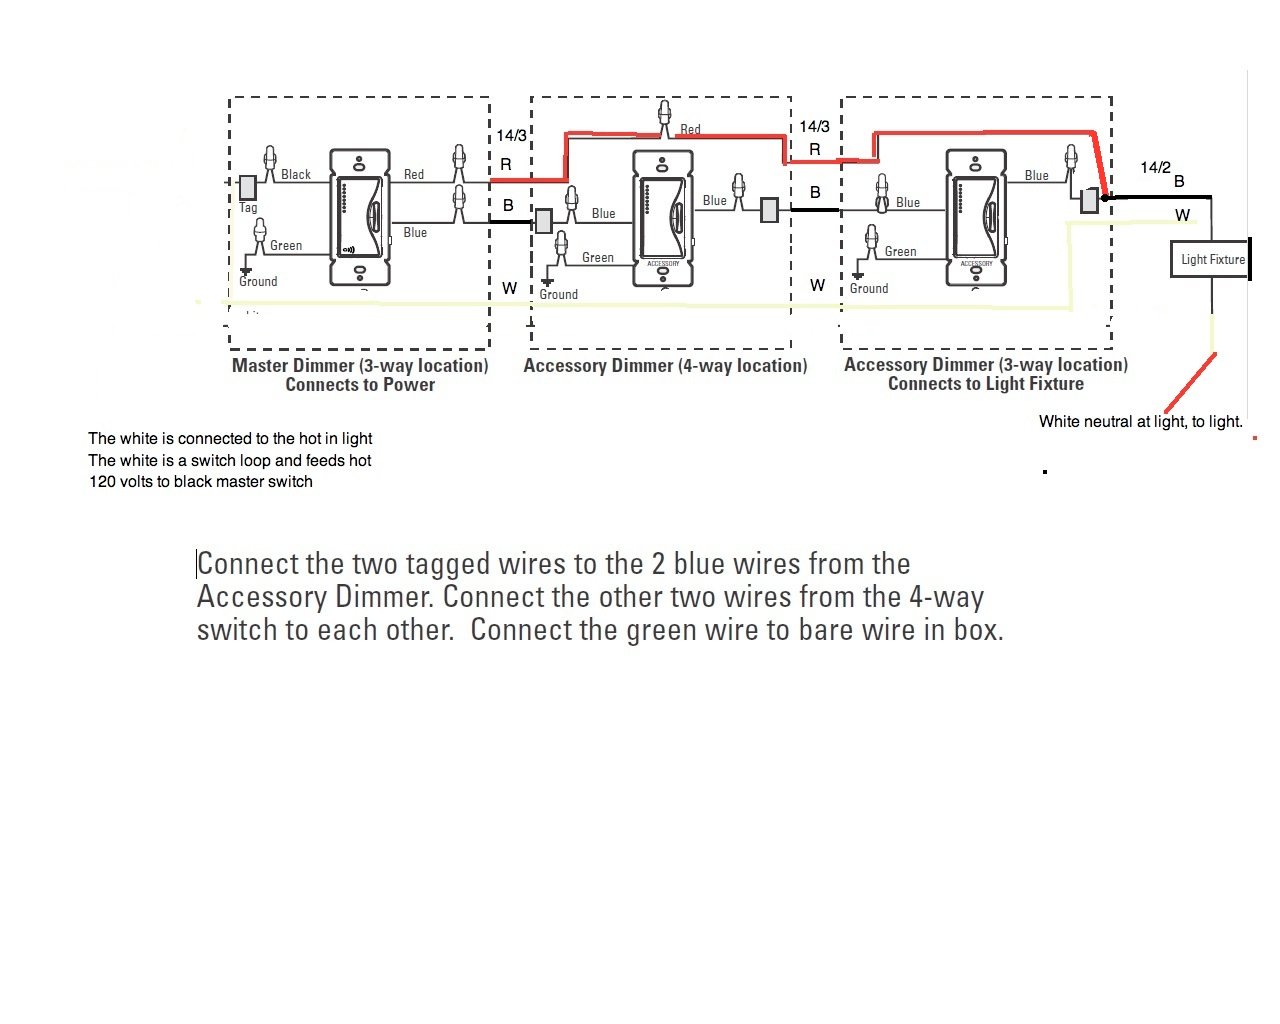 leviton dimmer wiring diagram leviton decora 4 way switch diagram leviton image 4 way dimmer switch wiring diagram wiring diagram